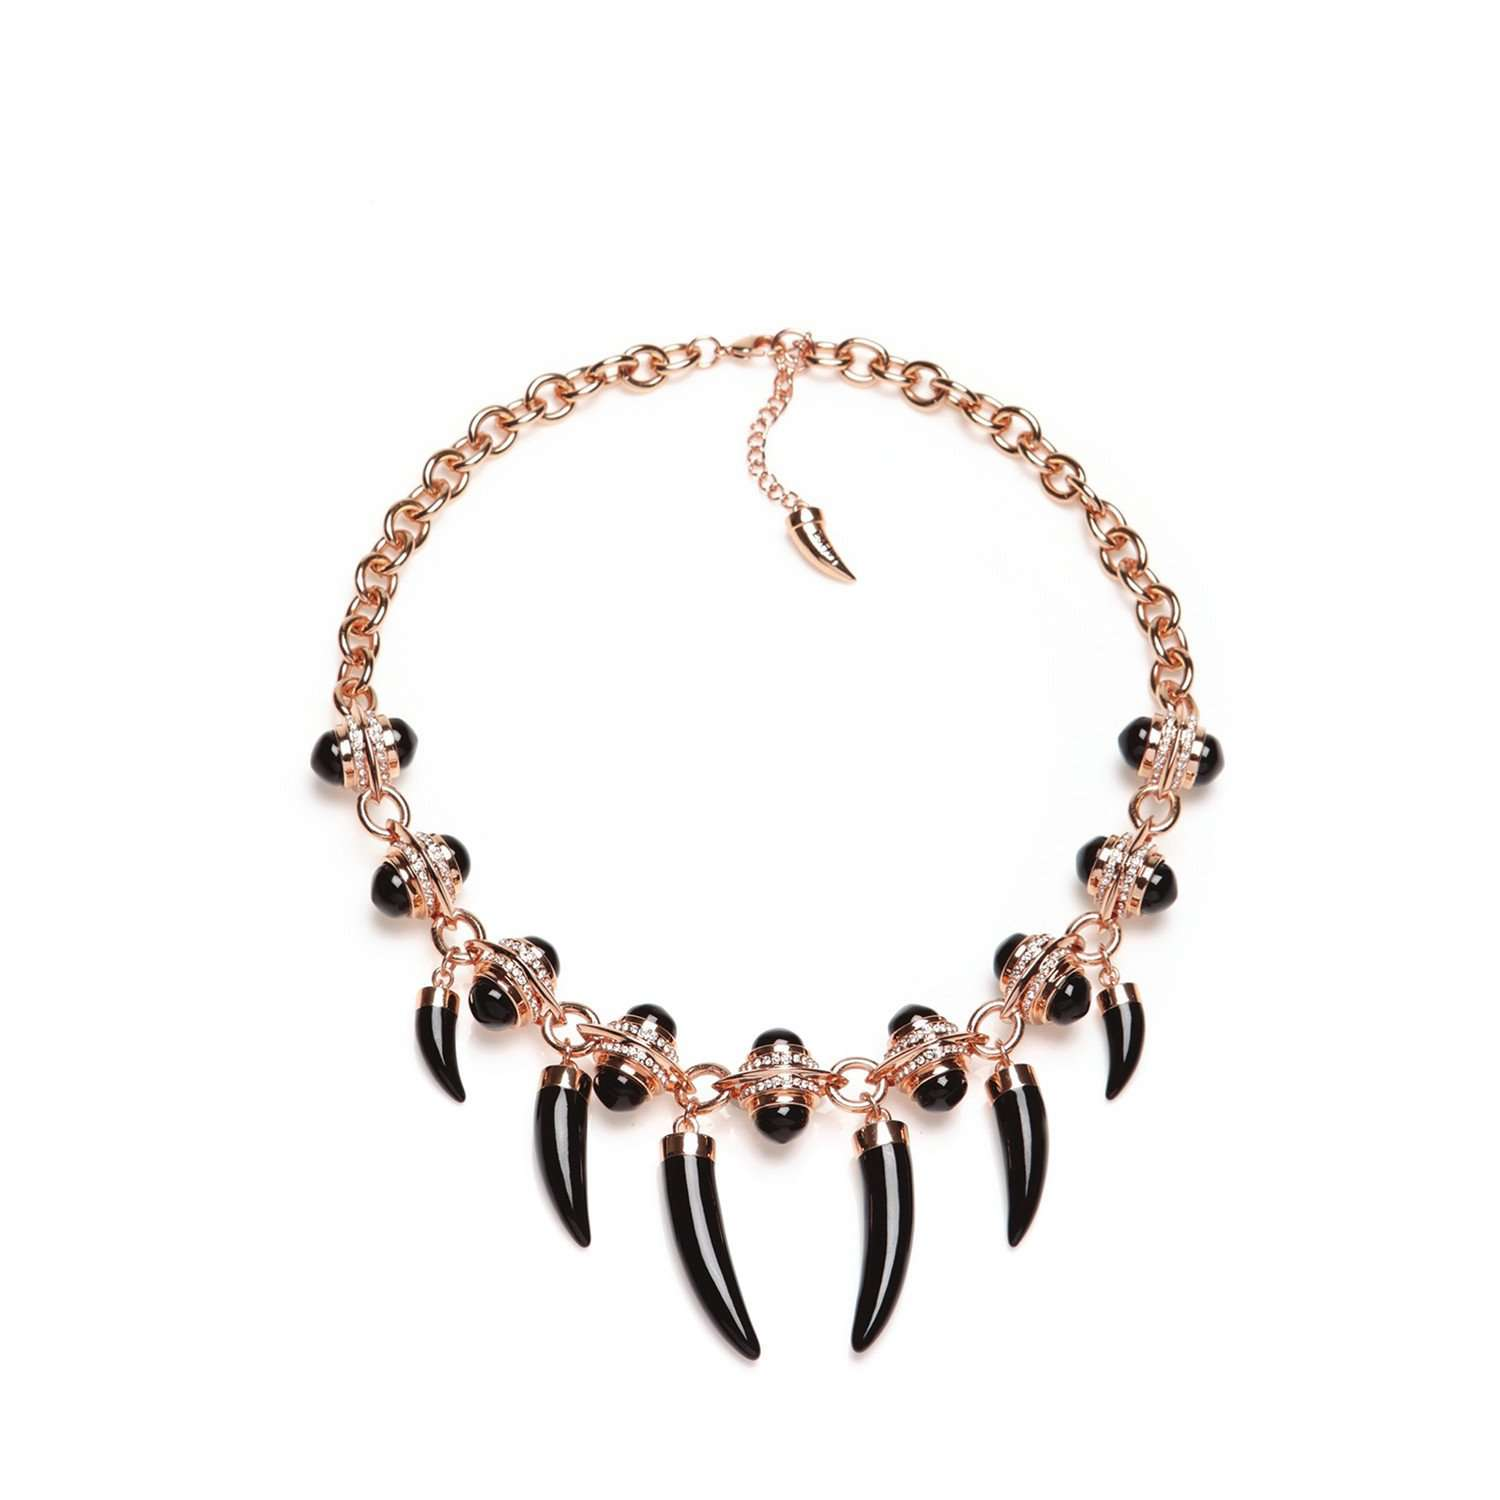 Jazz glitz necklace